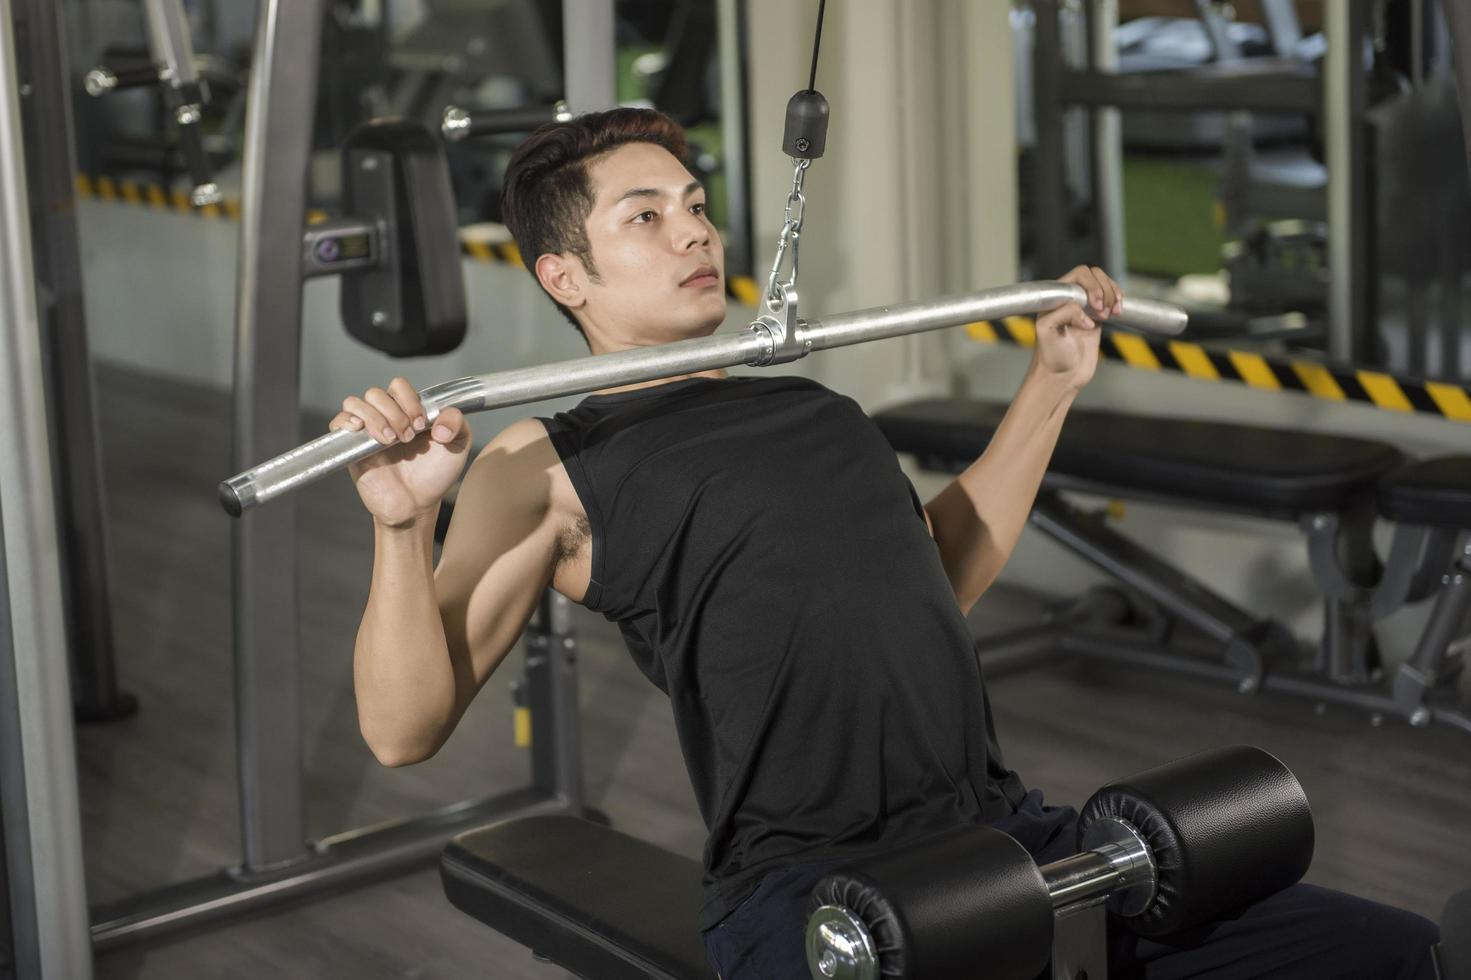 Man exercising on a machine at the gym photo